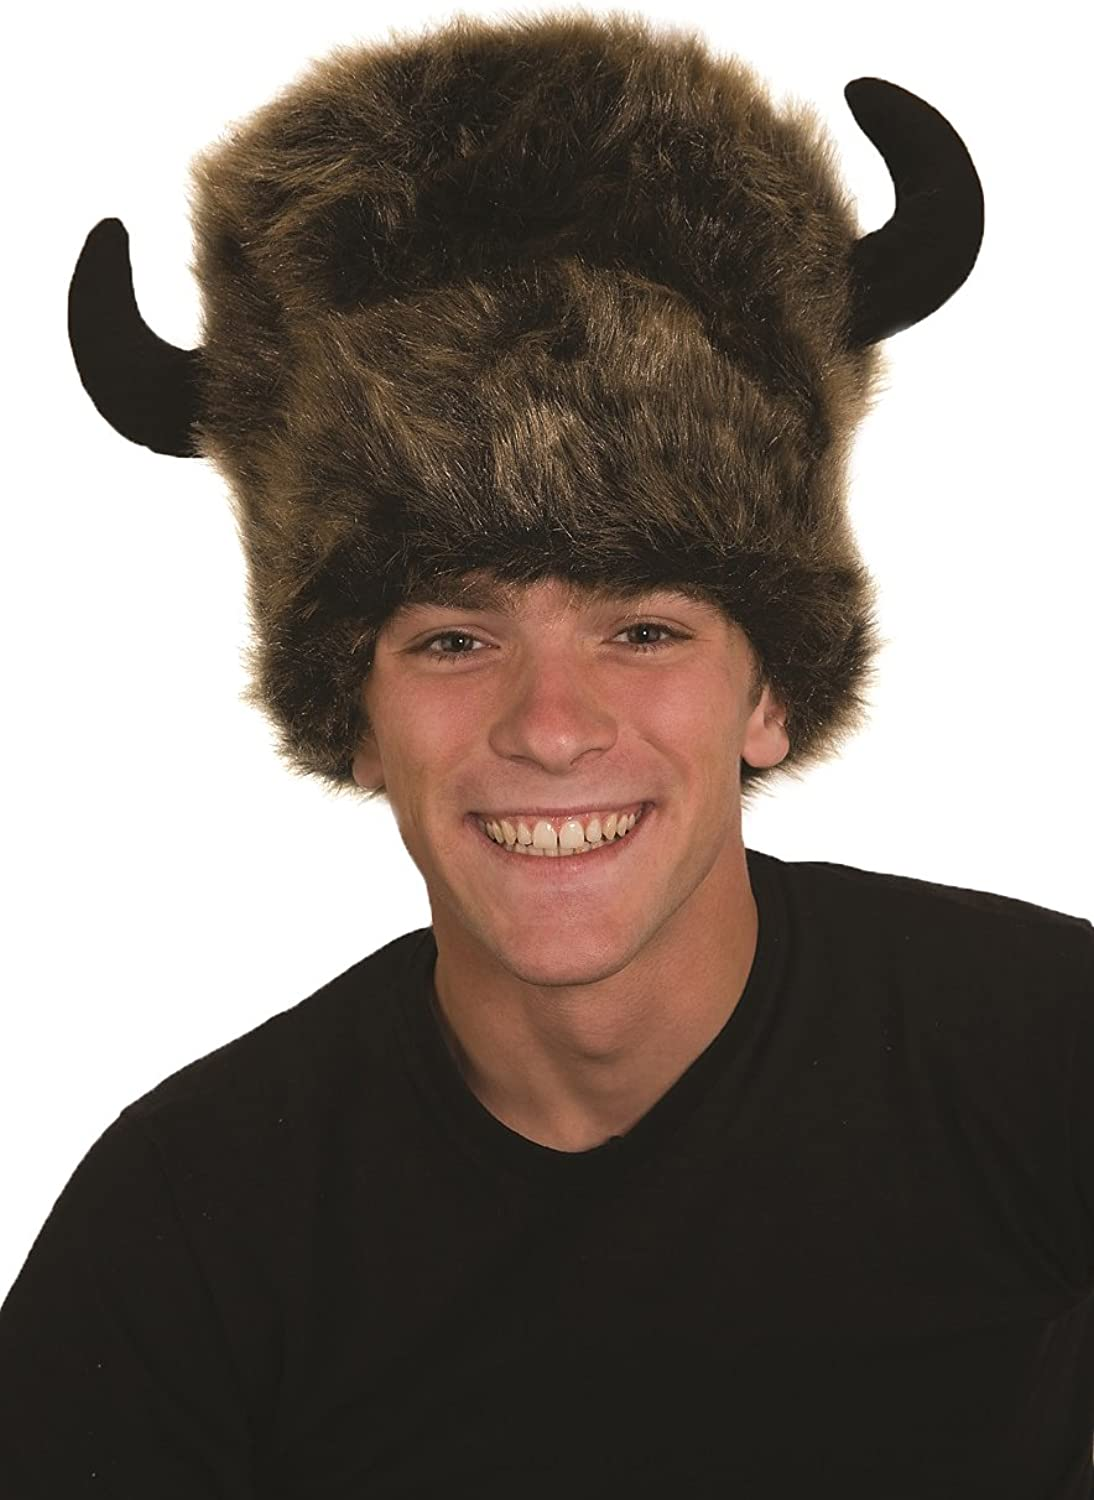 fe569150 Amazon.com: Adult Faux Fur Brown Bison Buffalo Hat With Horns ...